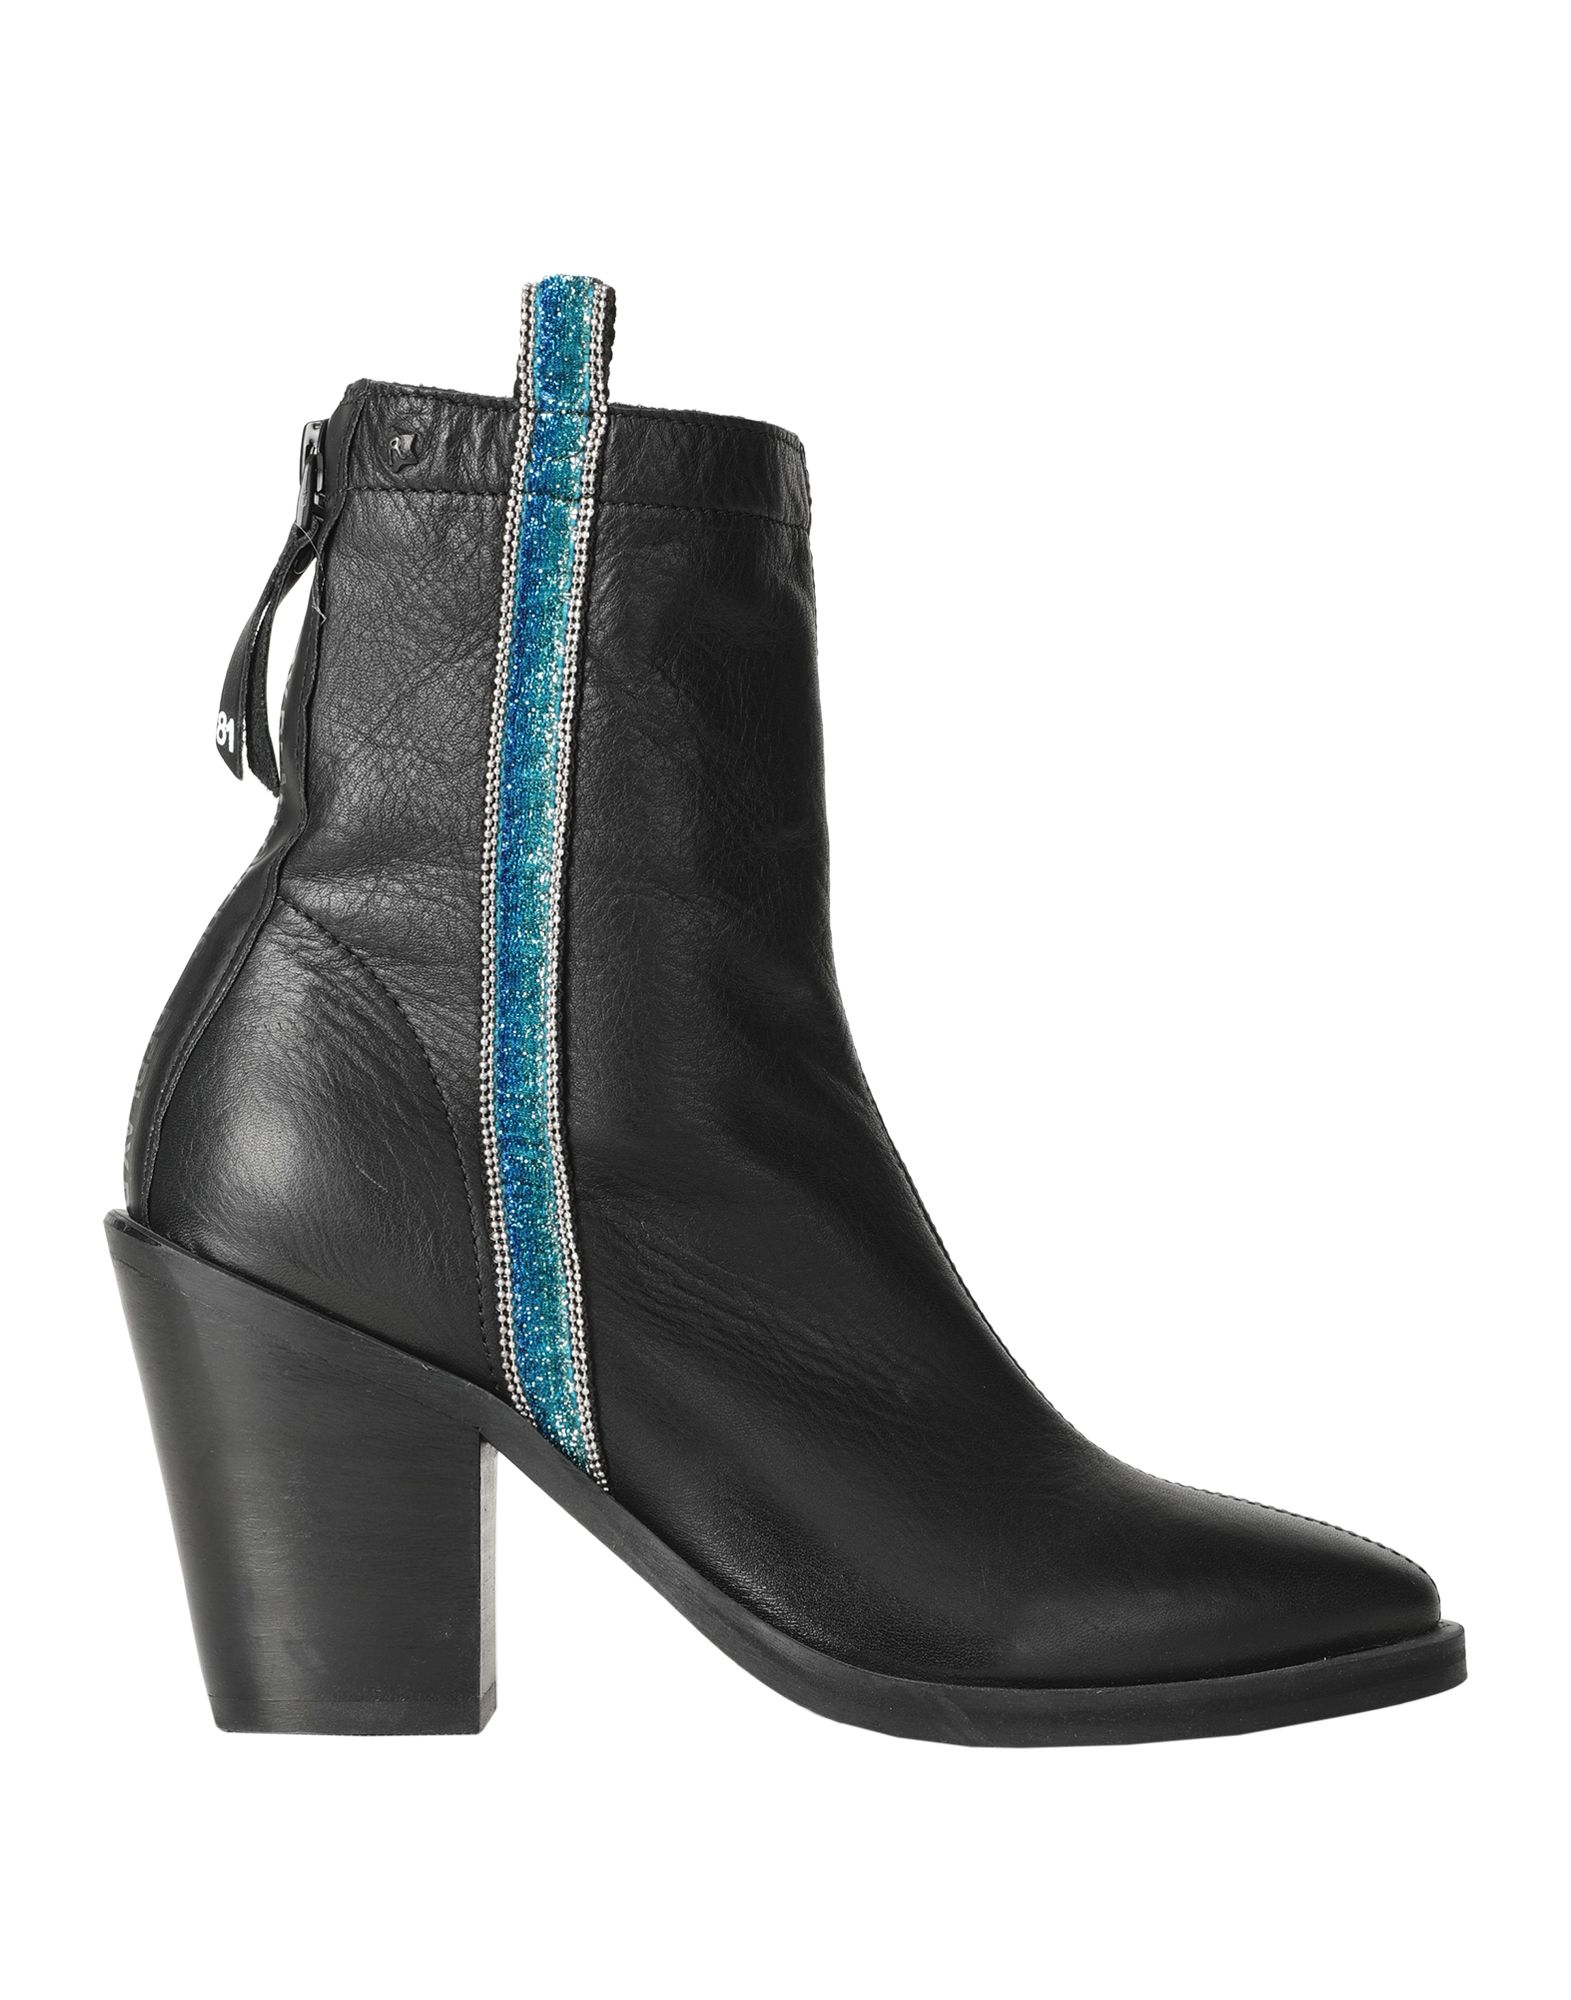 REPLAY Ankle boots - Item 11923418